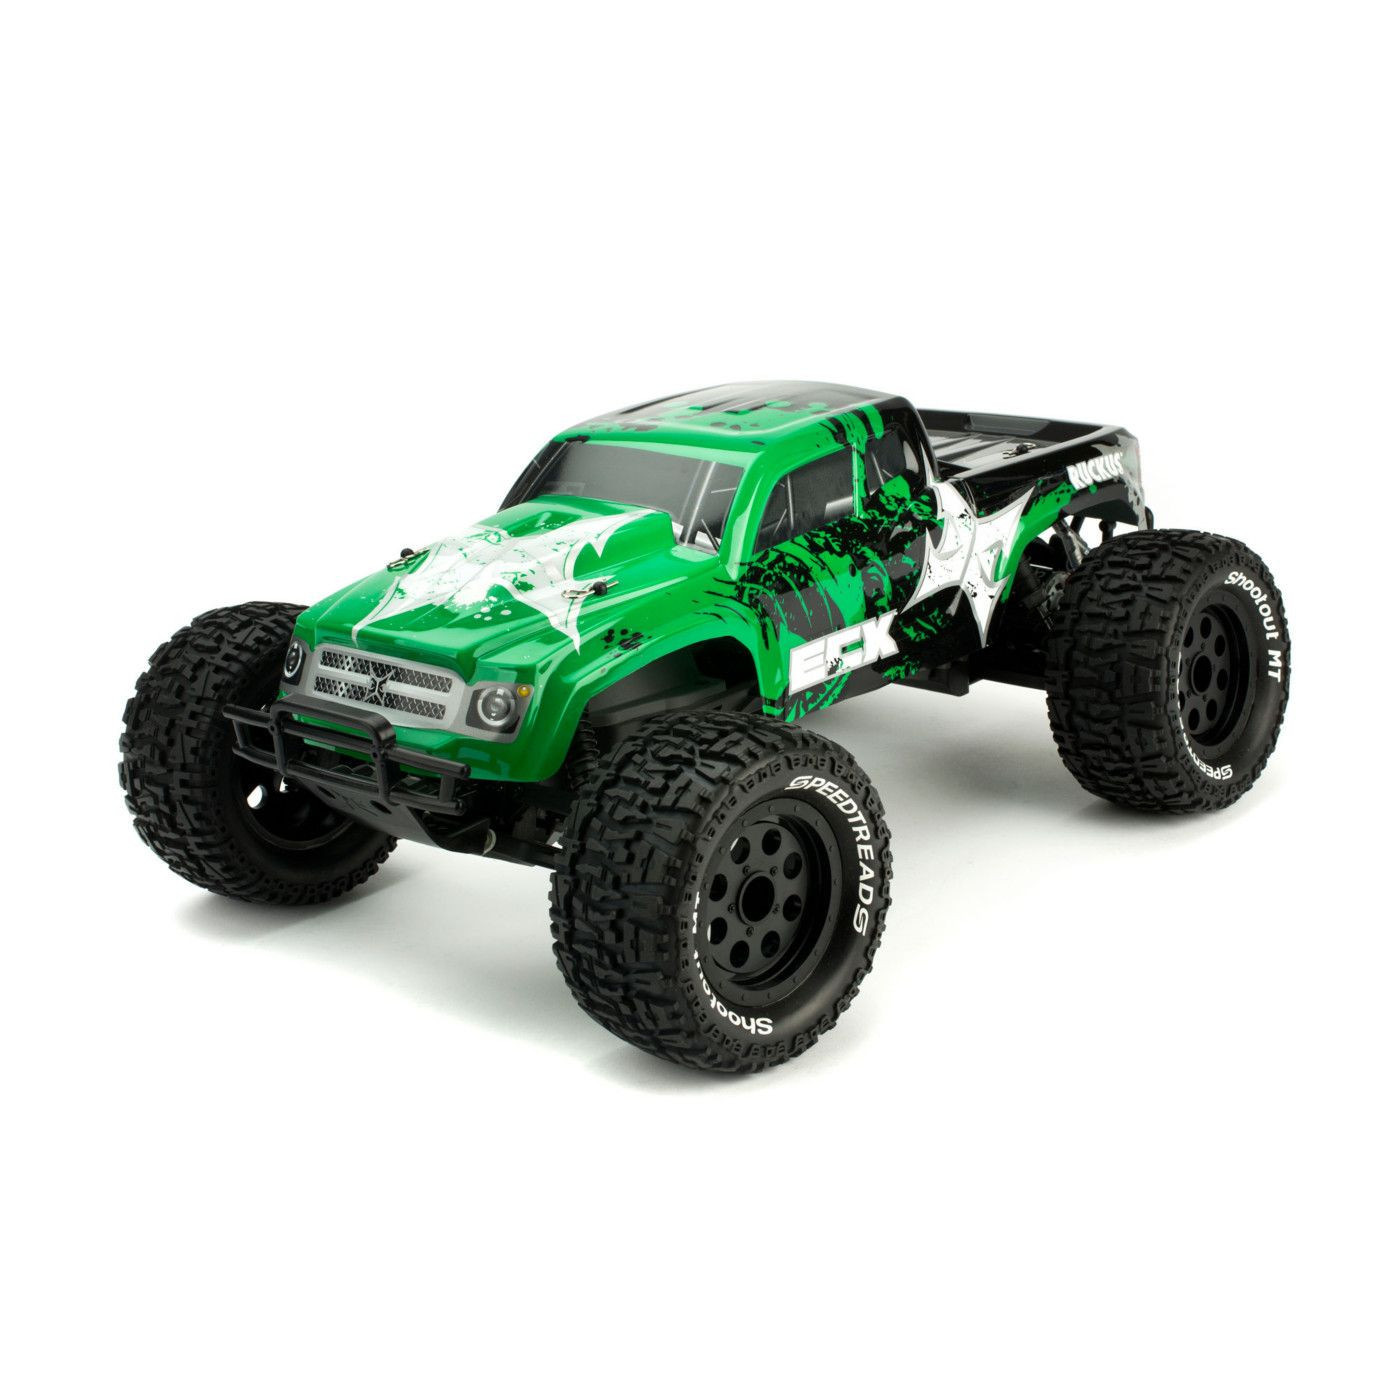 ECX Ruckus 1/10 2wd Monster Truck RTR Green/Black